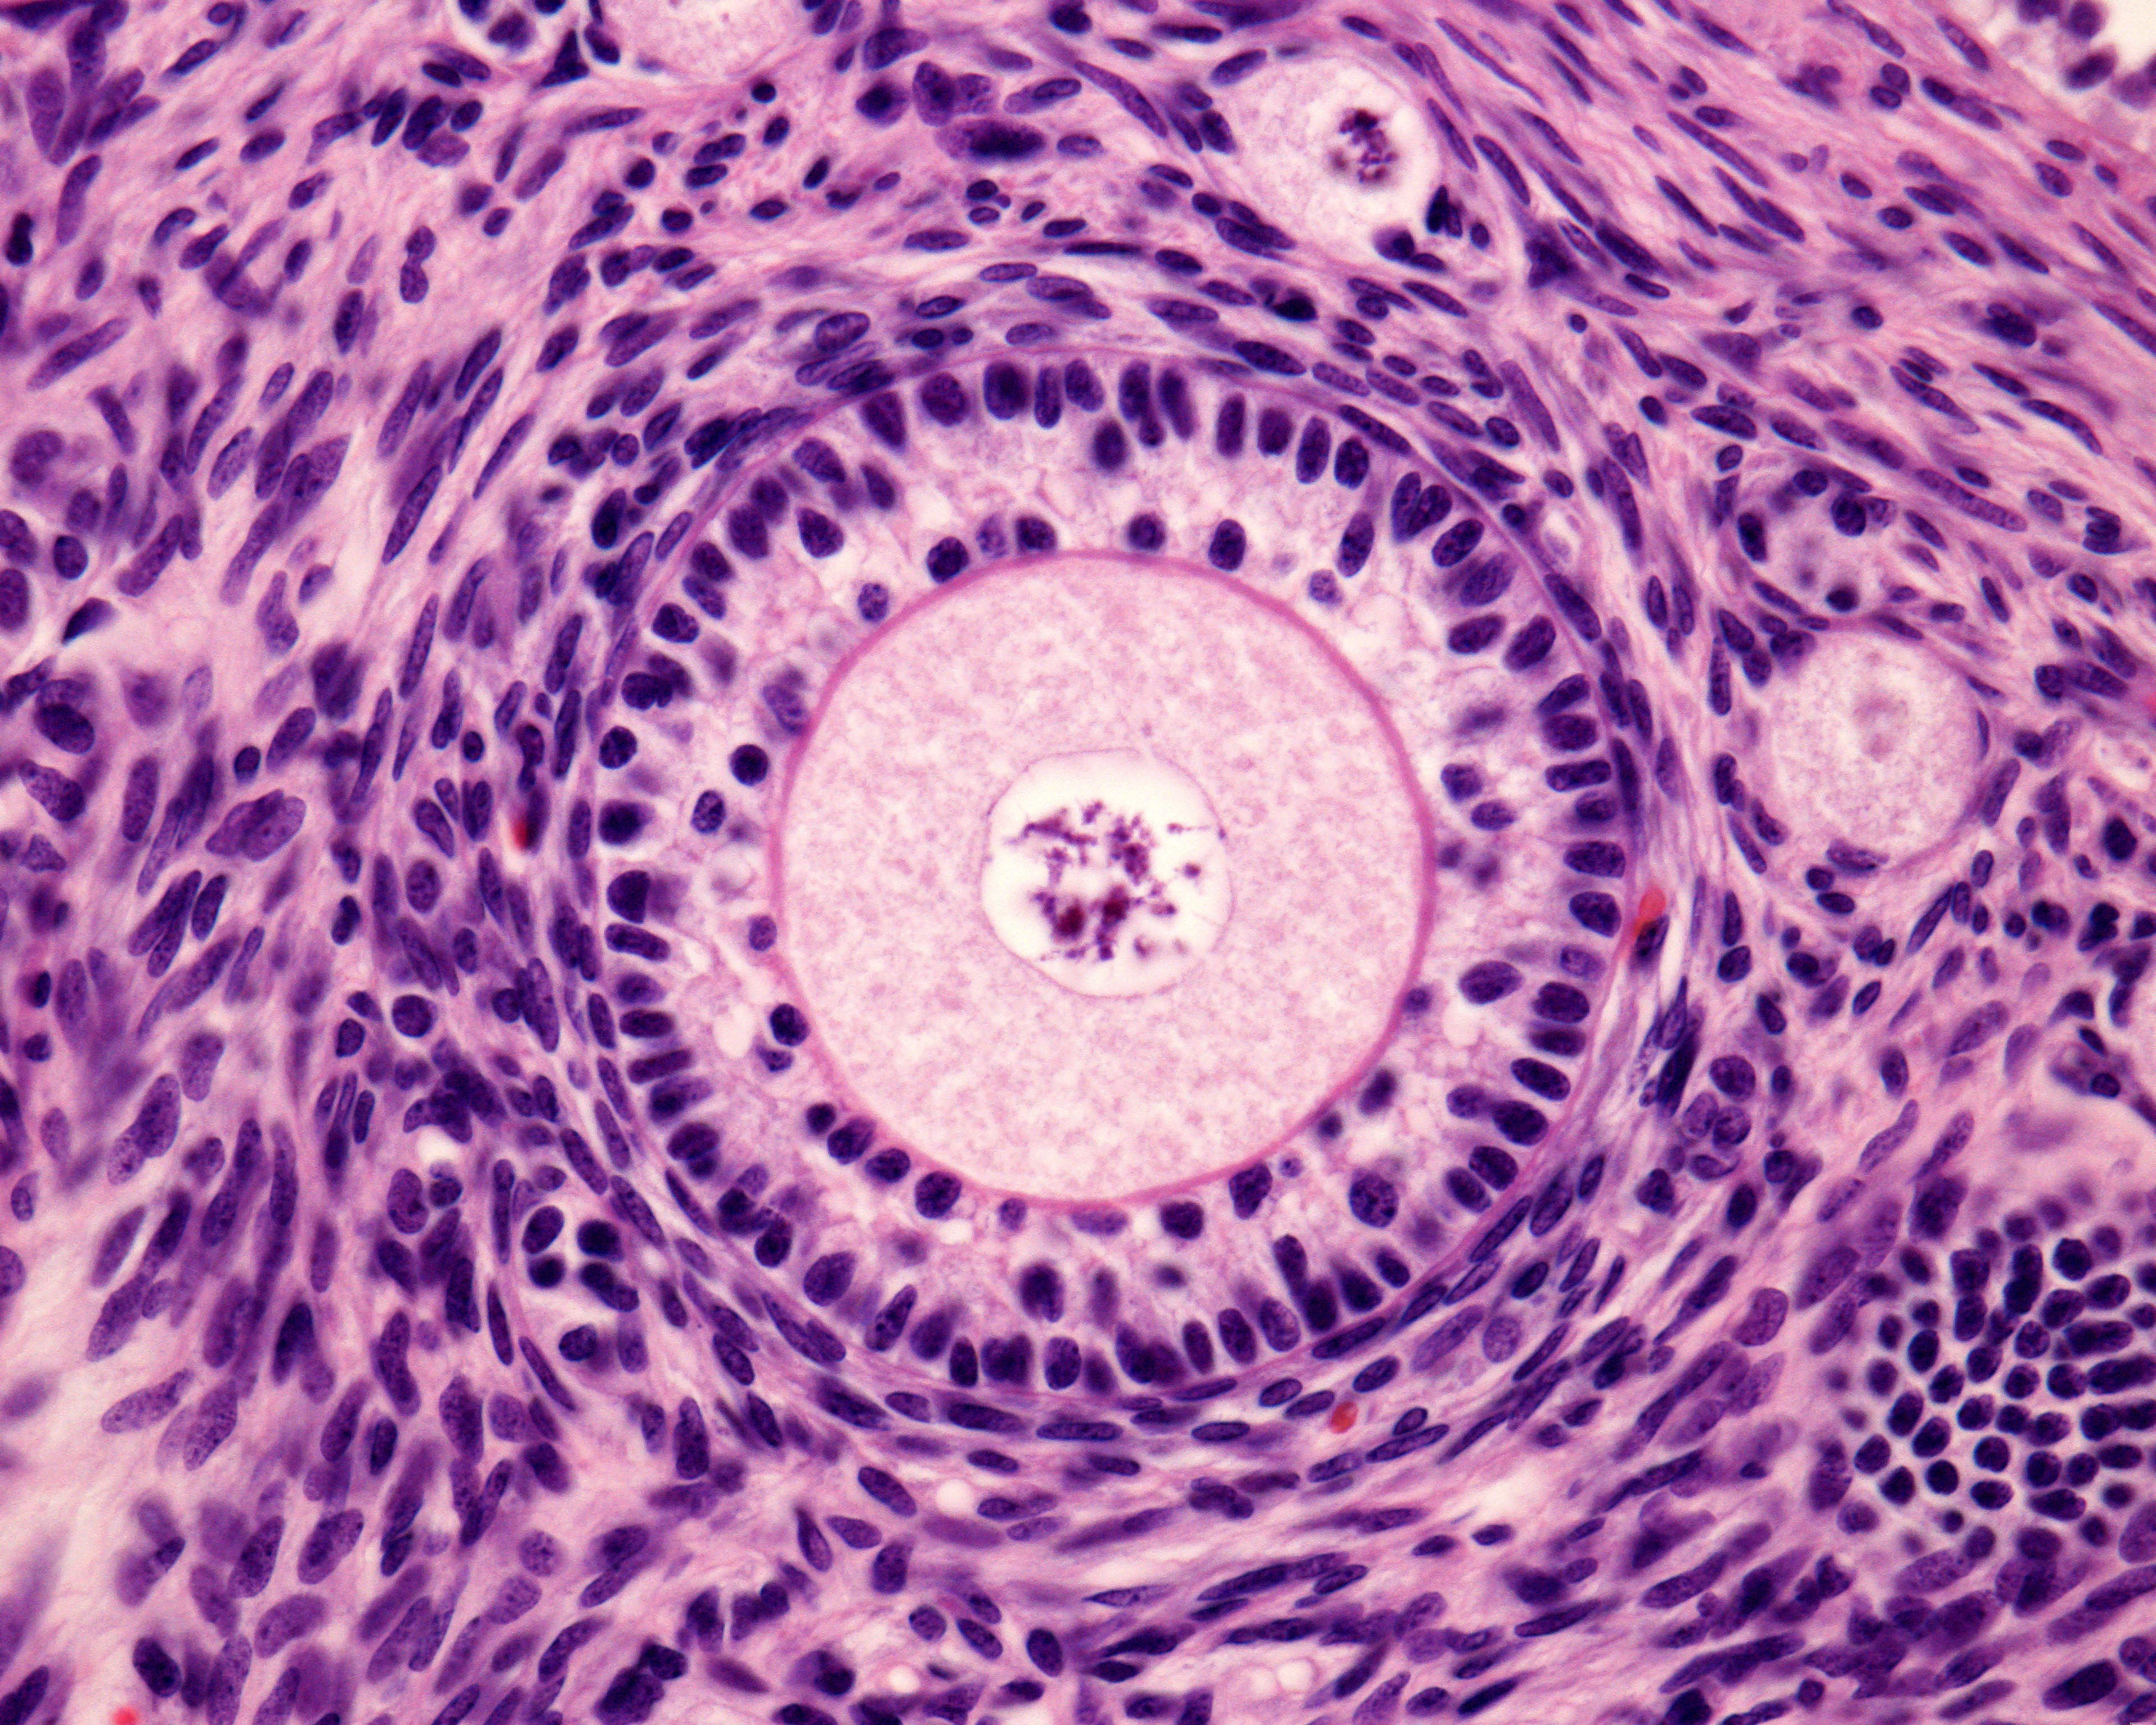 IVF Follicles: How Many Do You Need for Success?